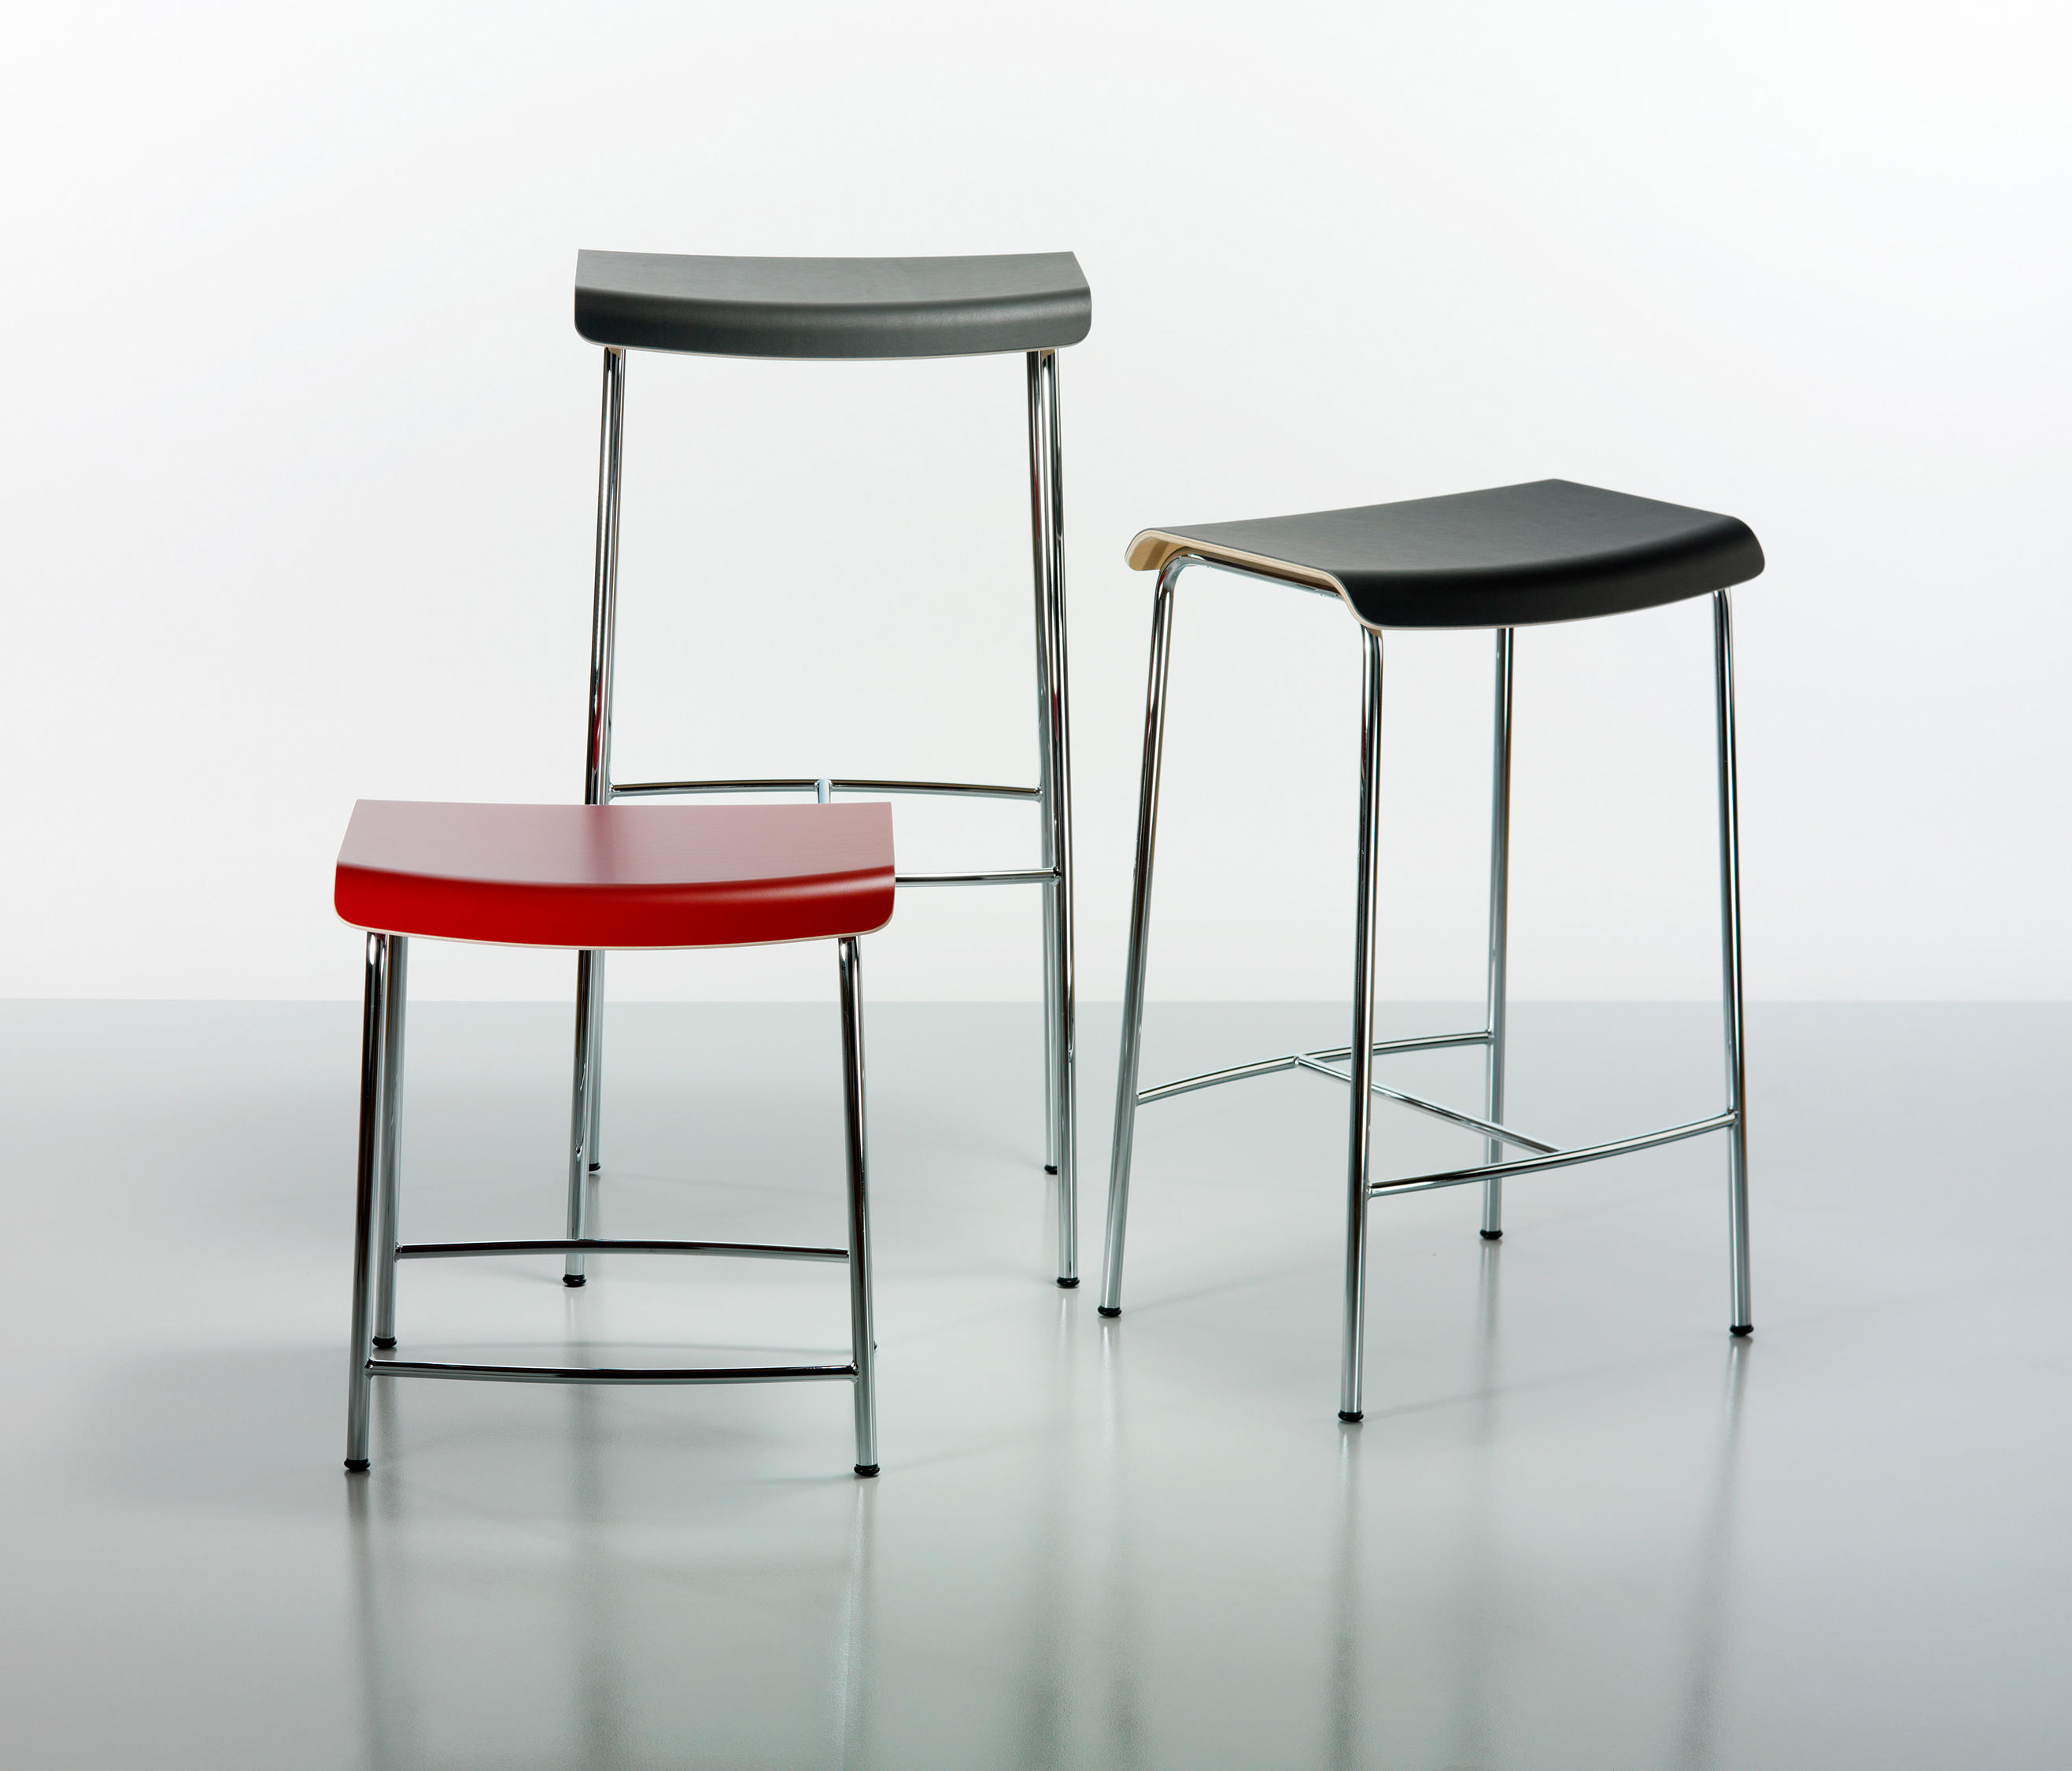 PAUSE CHAIR - Multipurpose chairs from Magnus Olesen | Architonic